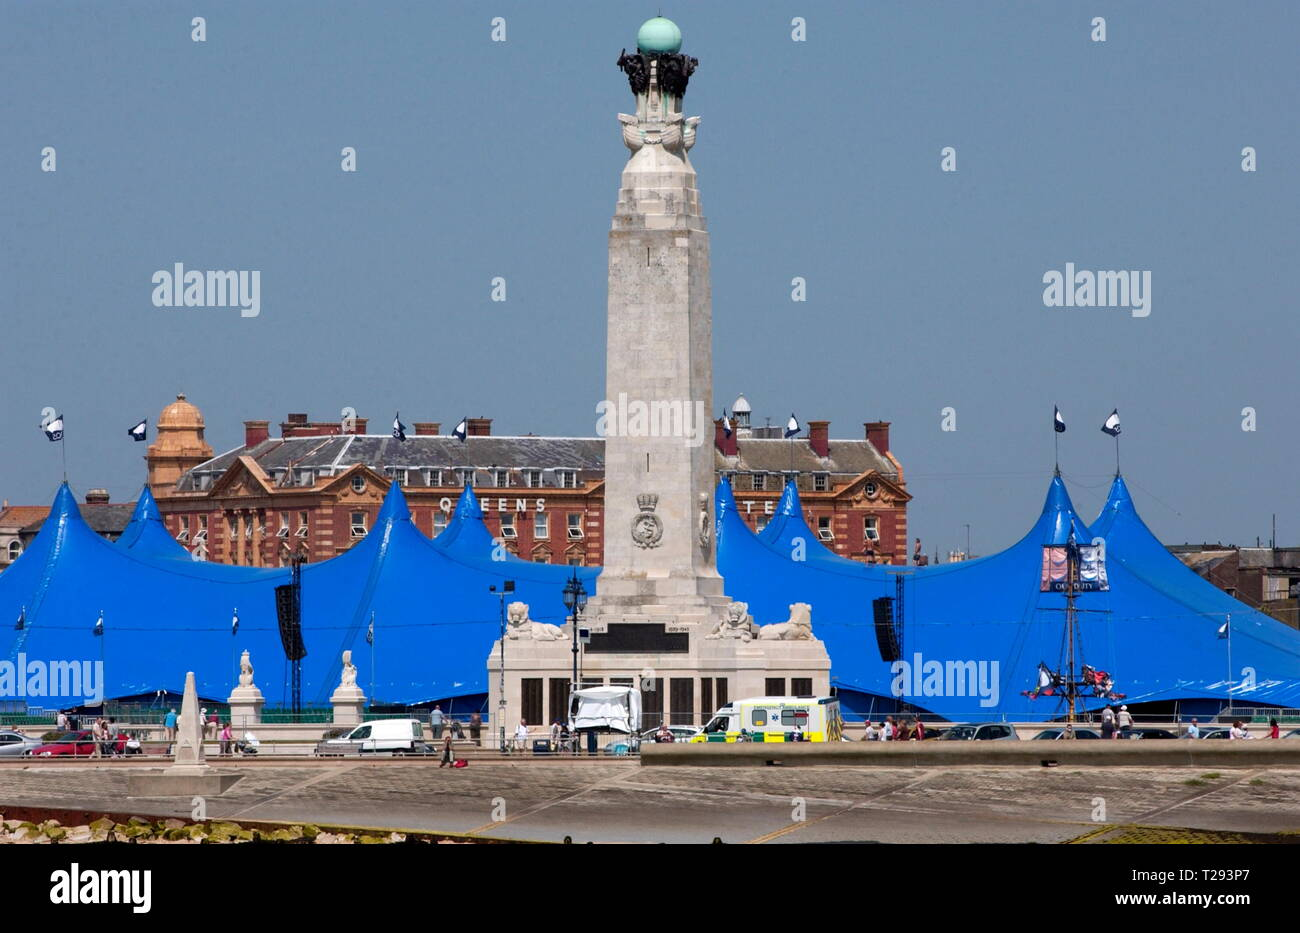 AJAXNETPHOTO. 2005. PORTSMOUTH, ENGLAND. - NAVAL WAR MEMORIAL - OBELISK ON SOUTHSEA COMMON AT CLARENCE ESPLANADE OVERLOOKS THE SOLENT; NAVIGATION MARK FOR SHIPPING.  PHOTO:JONATHAN EASTLAND/AJAX REF:D152706 0199 Stock Photo